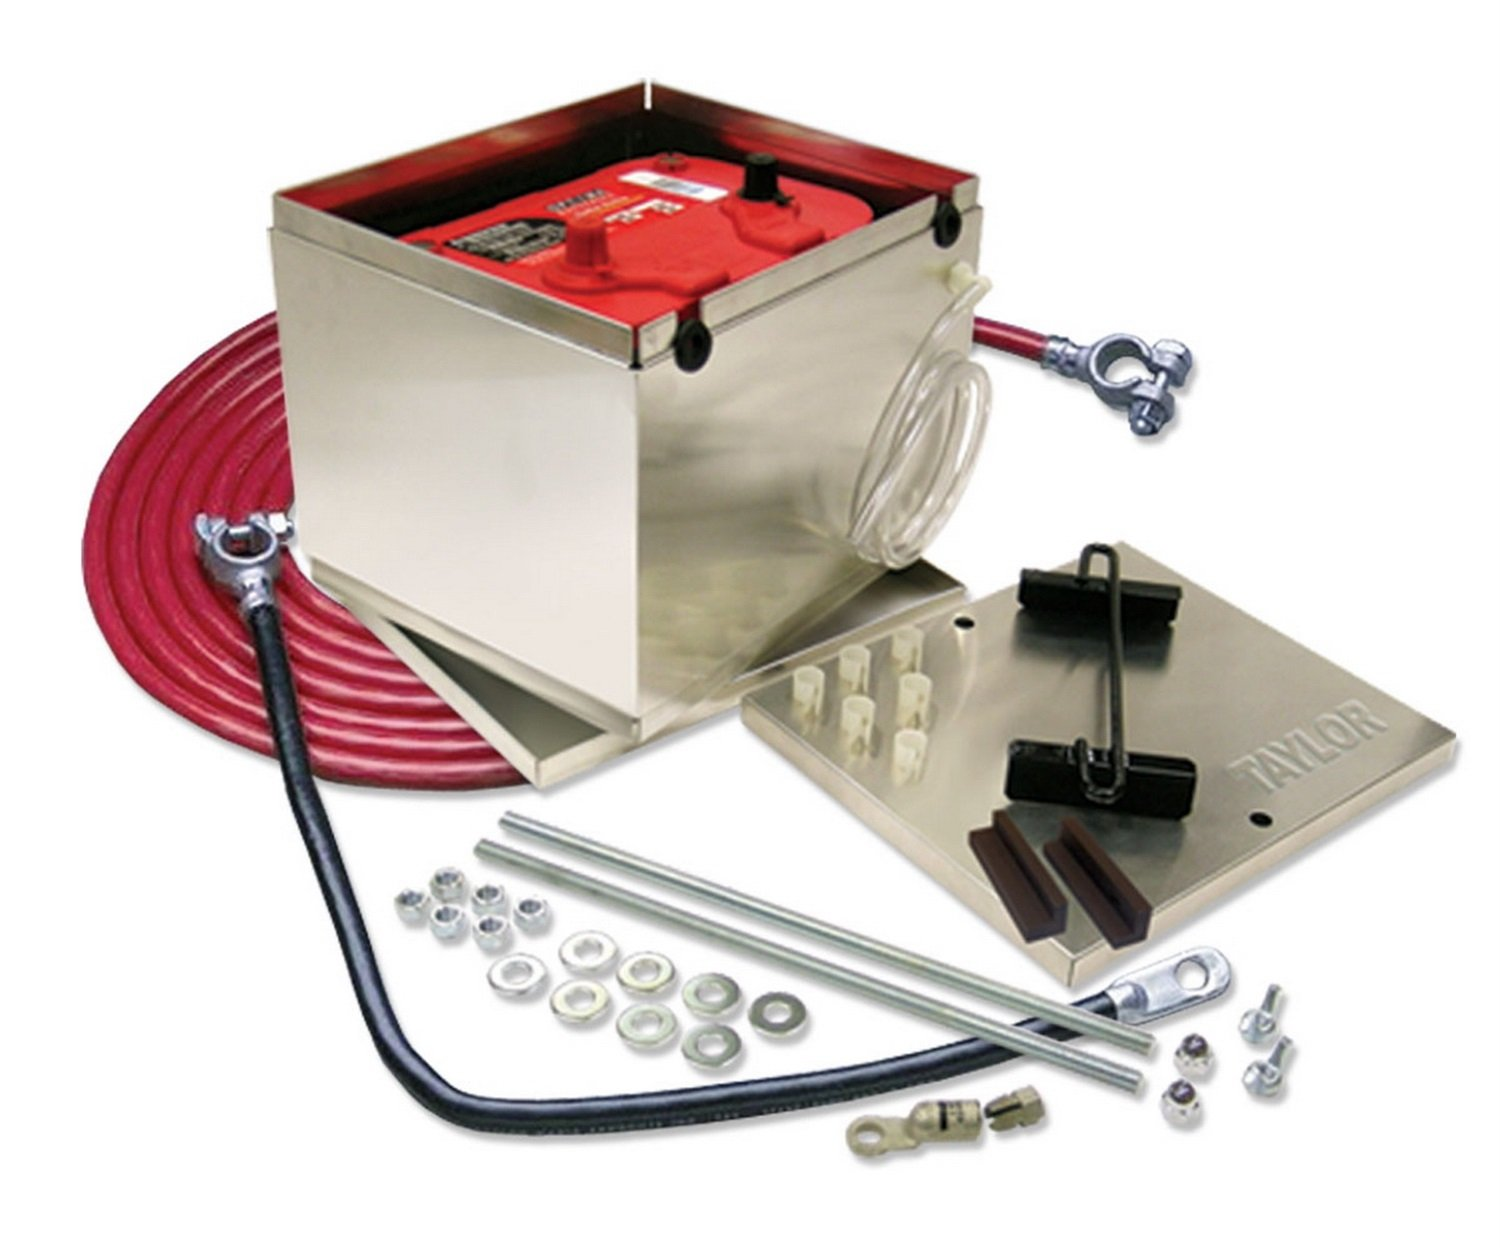 Taylor (48201) 200 Series Aluminum Battery Box with 2-GA Cable